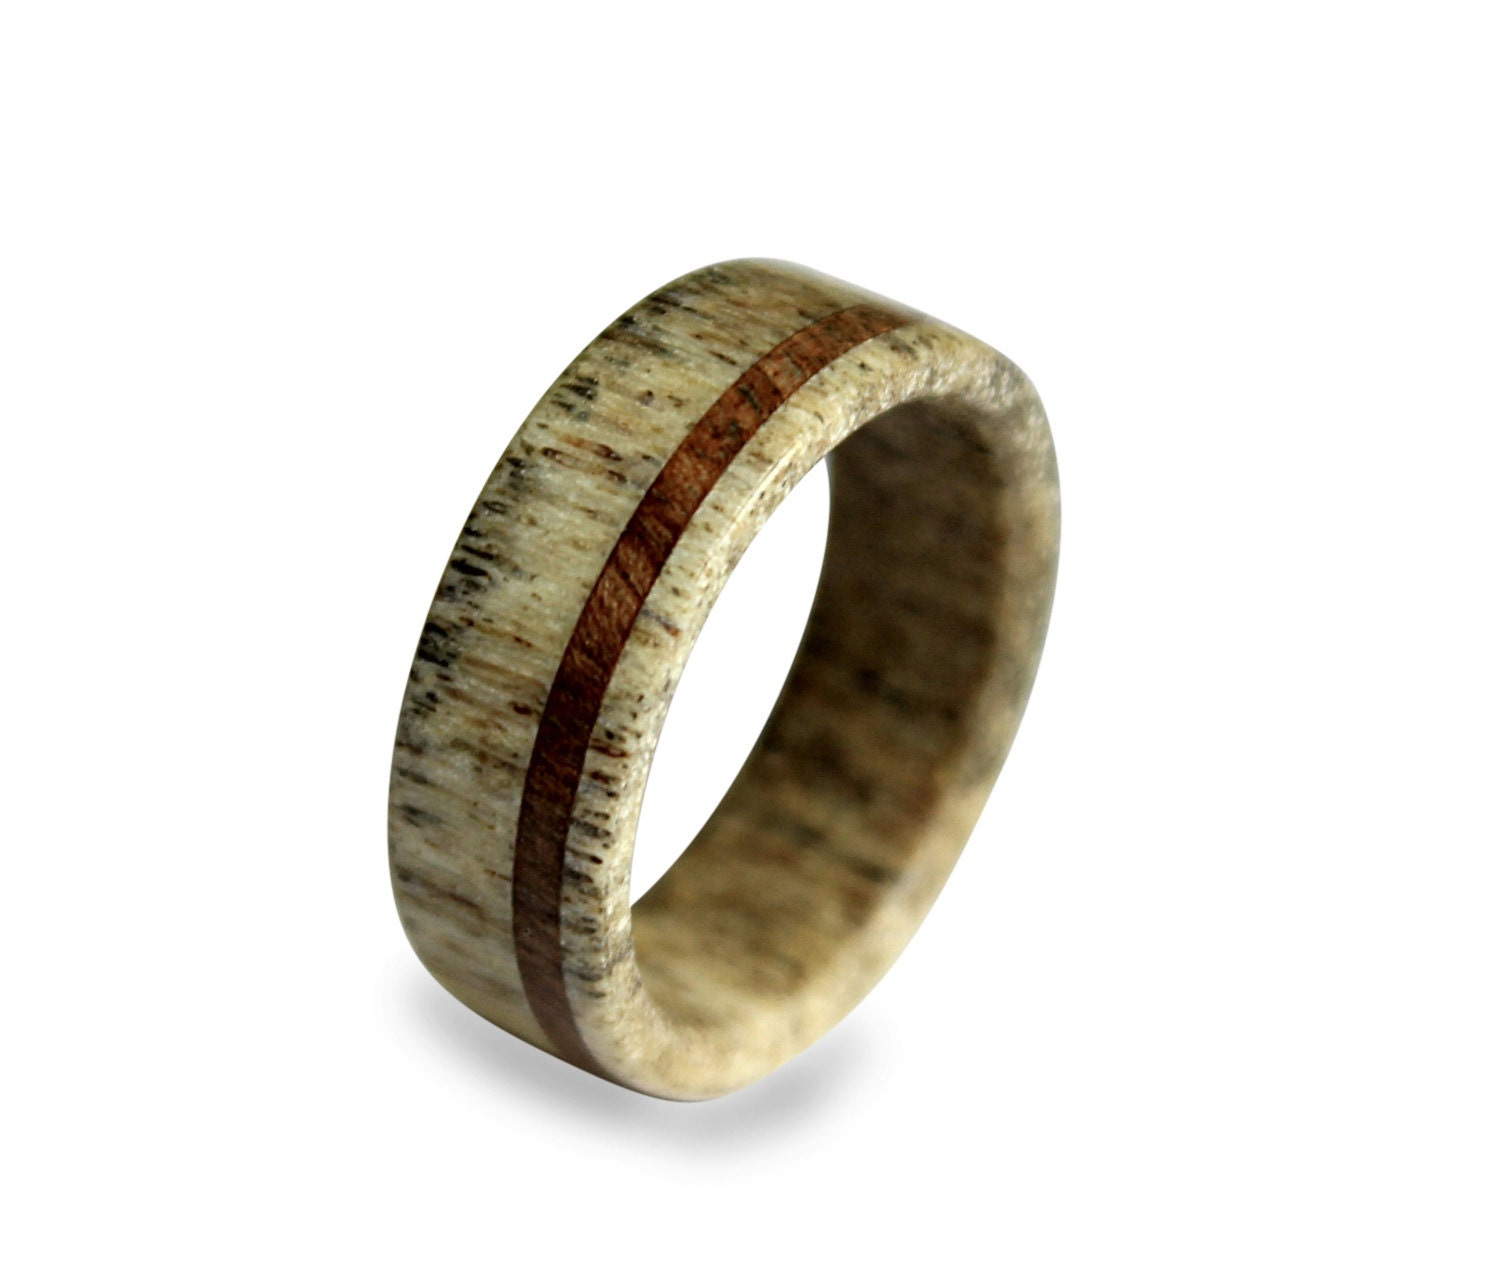 deer antler ring antler ring wooden ring antler ring inlaid with oak wood - Deer Antler Wedding Rings